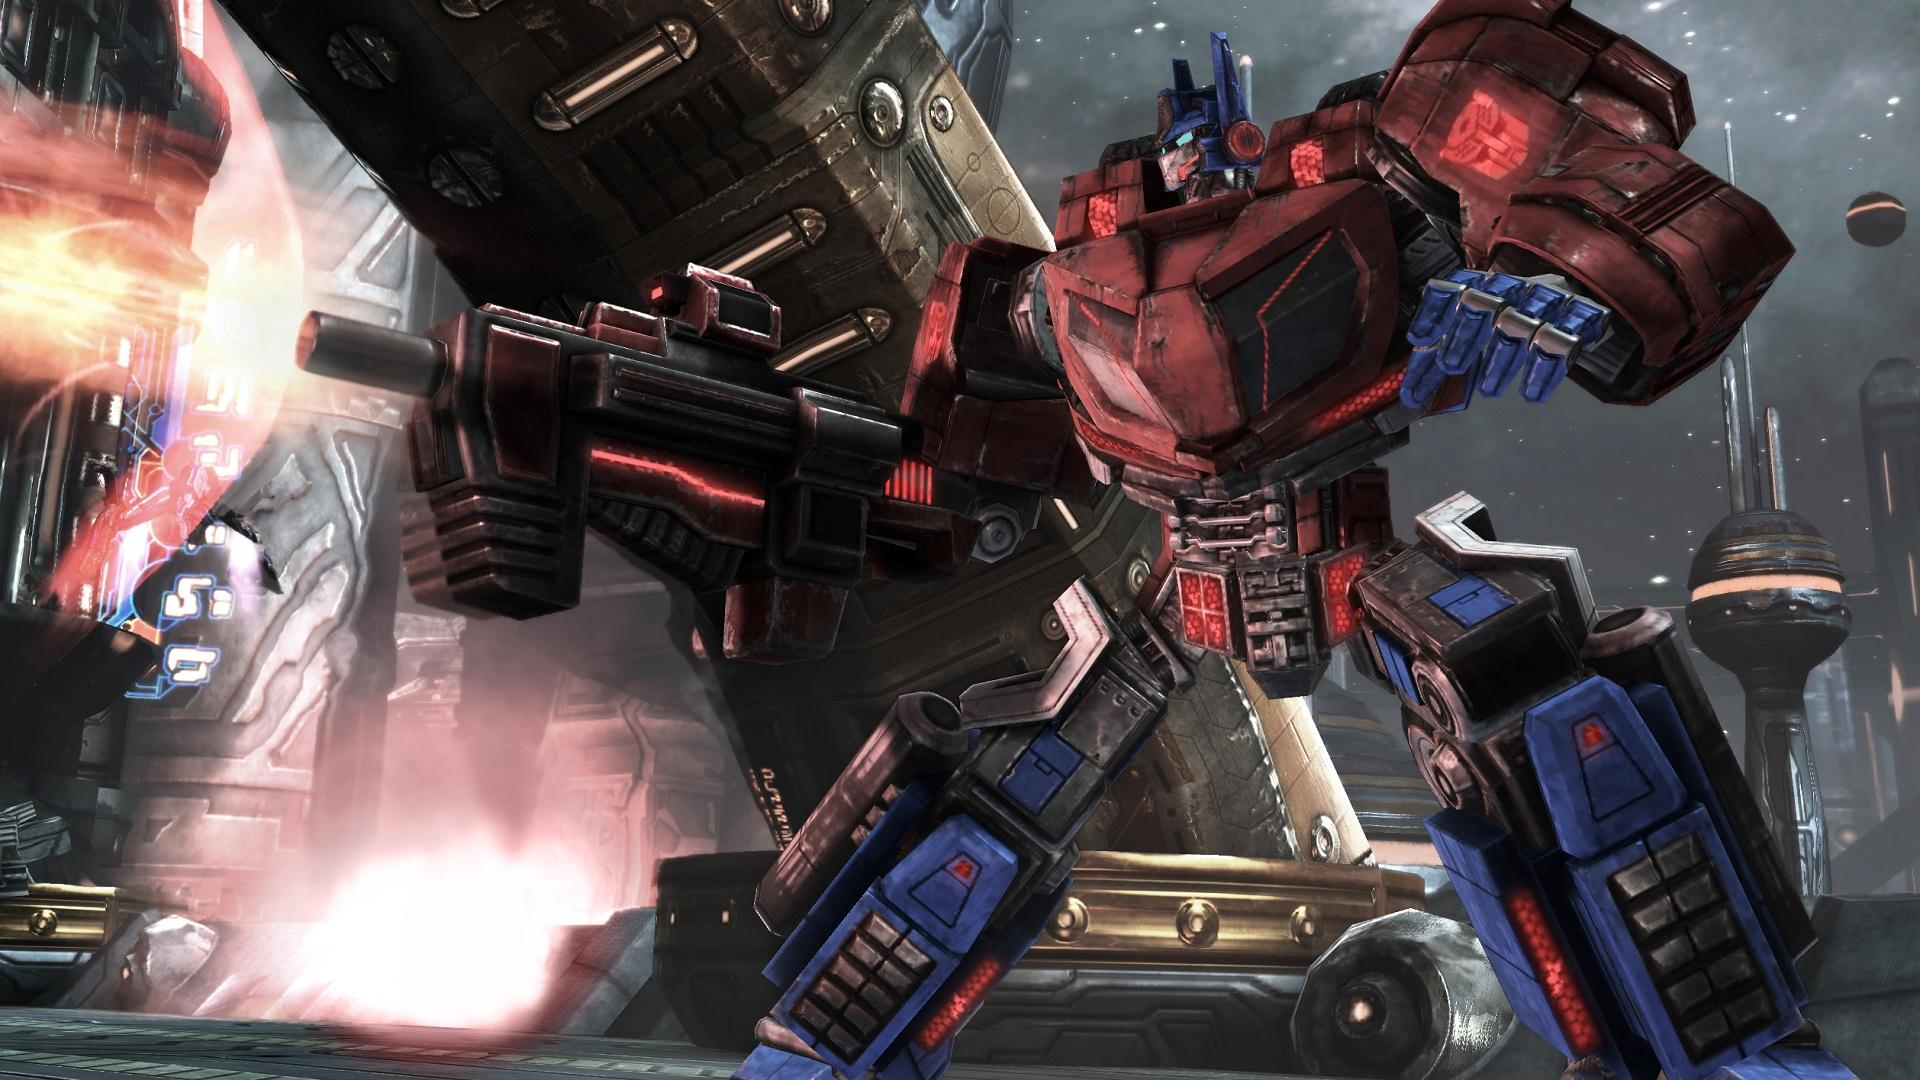 transformers: war for cybertron - images & screenshots | gamegrin